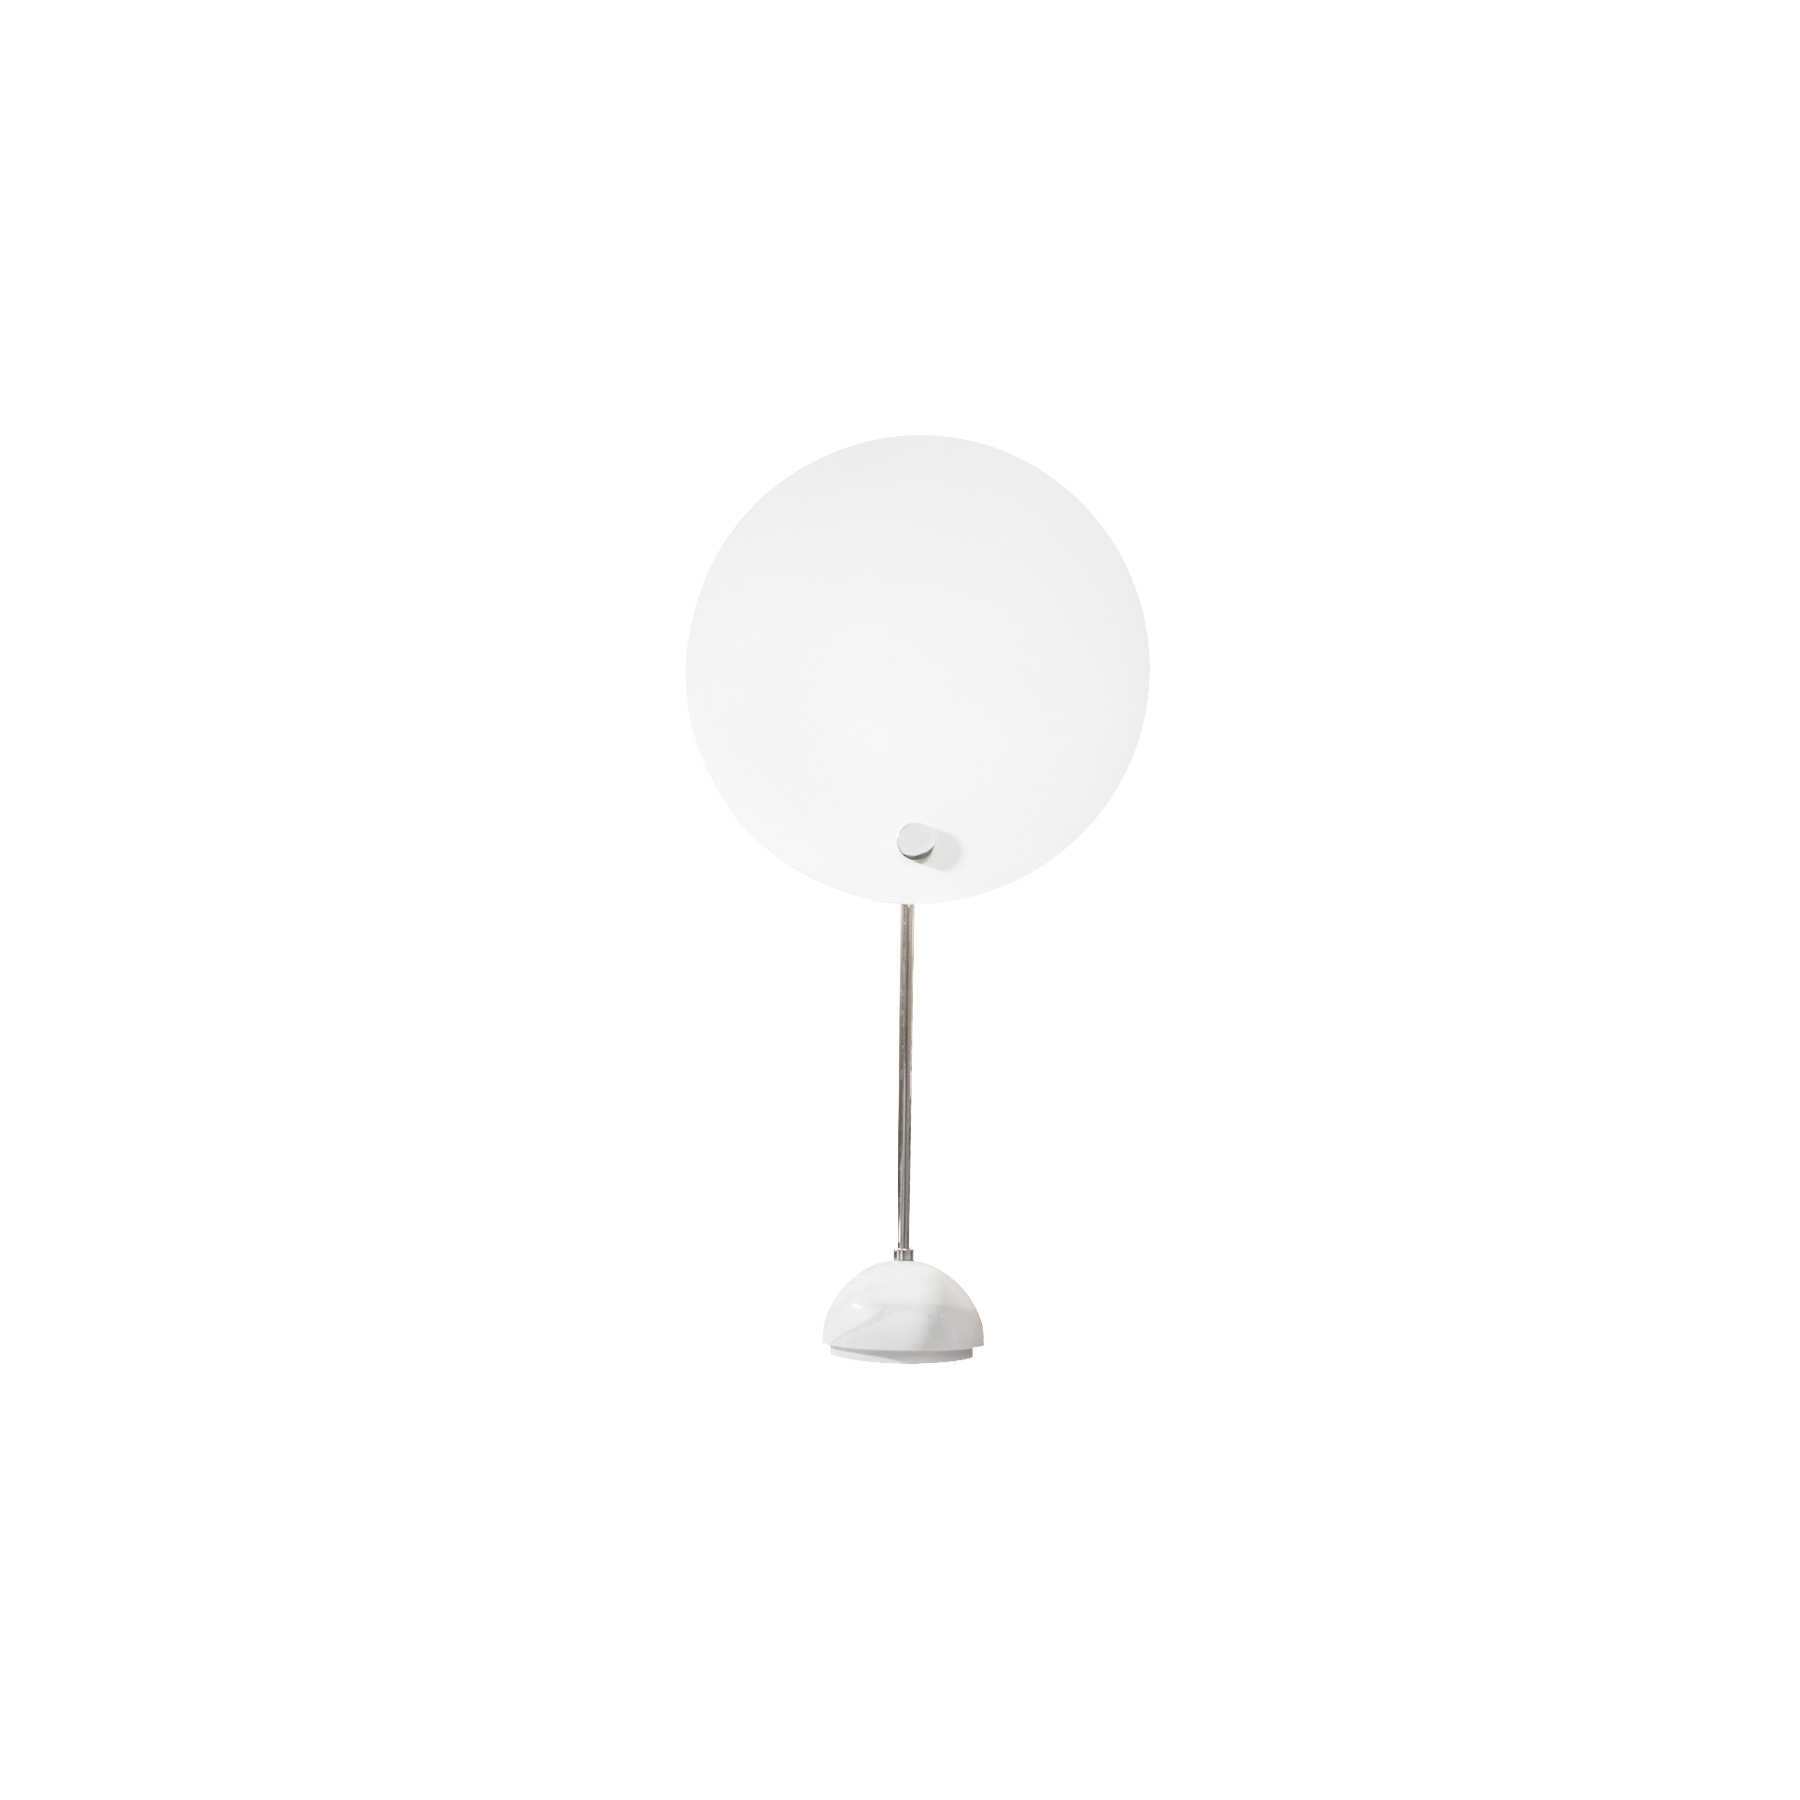 Kuta Table Lamp - Kuta is an indirect light aluminium lamp with a circular reflector in aluminium, which shields the lighting distribution, giving the effect of a solar eclipse. The circular screen is painted in white and black, the stem and the metal small parts and hemispherical support are chromed. Table version with base in white marble. 